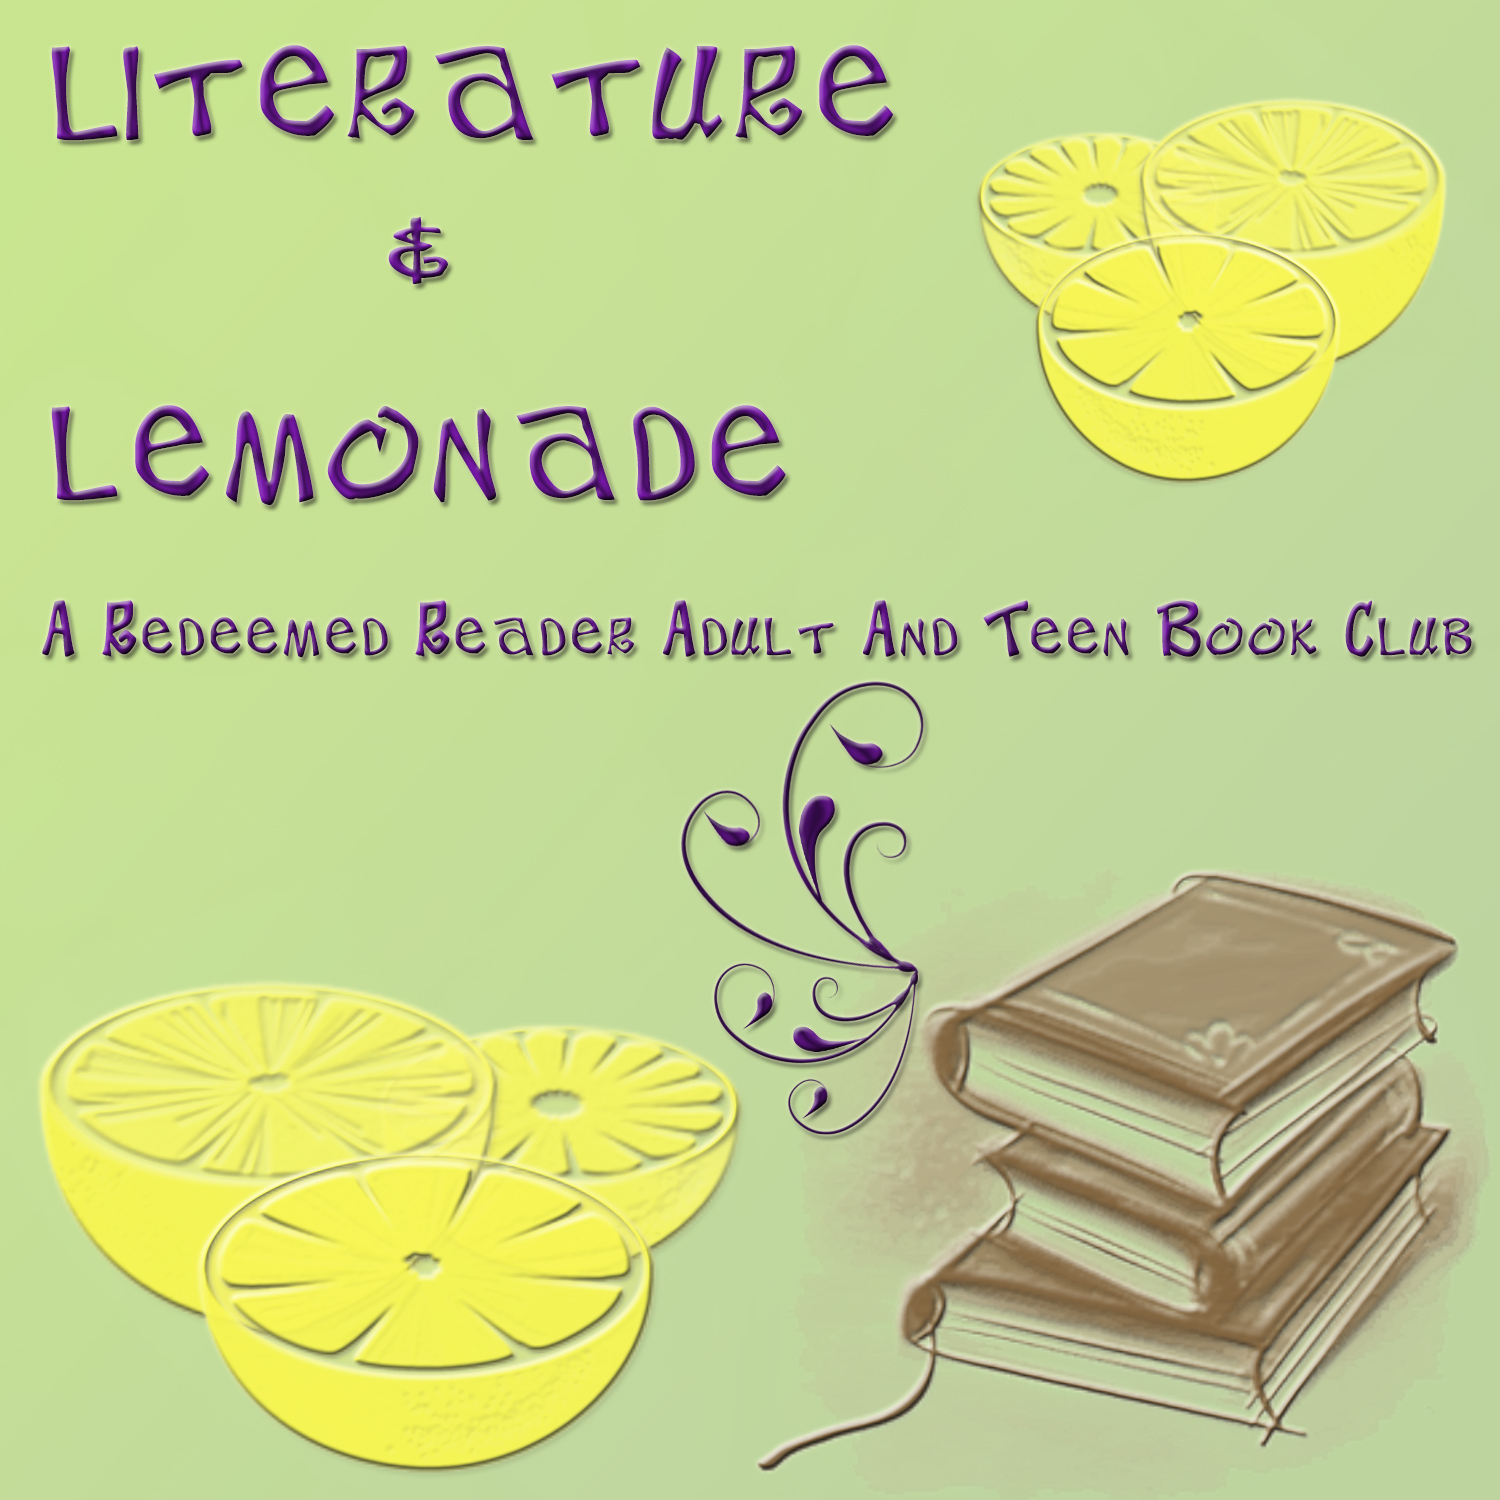 Literature & Lemonade